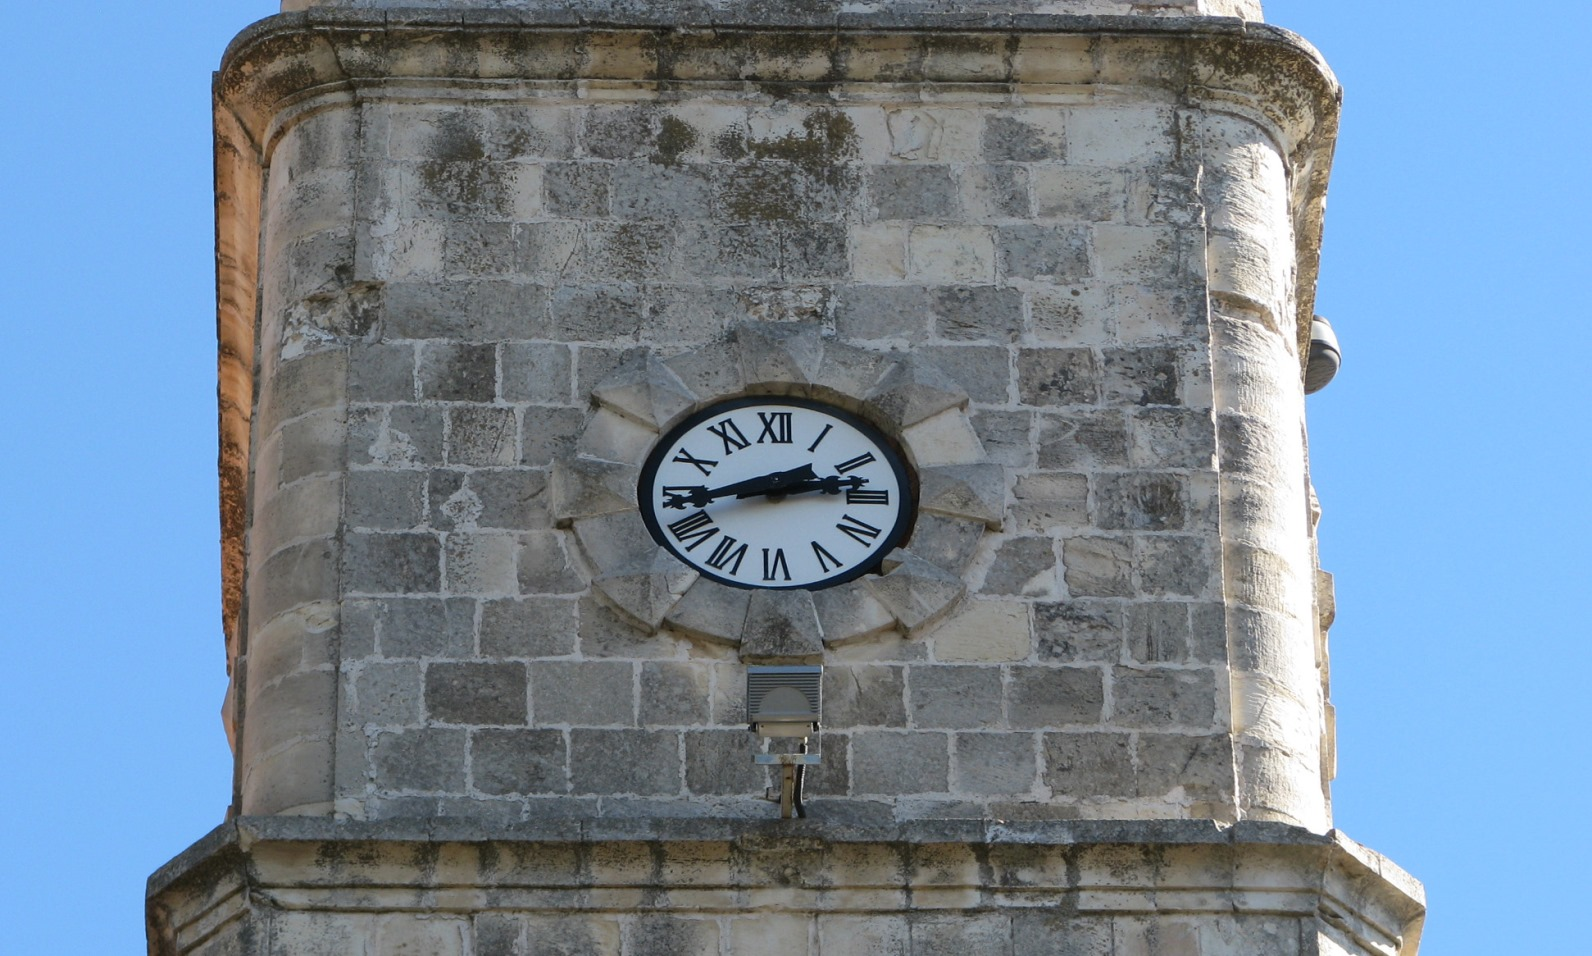 A close-up of the clock on the Safed clock tower. Photo by Herman/Wikimedia Commons